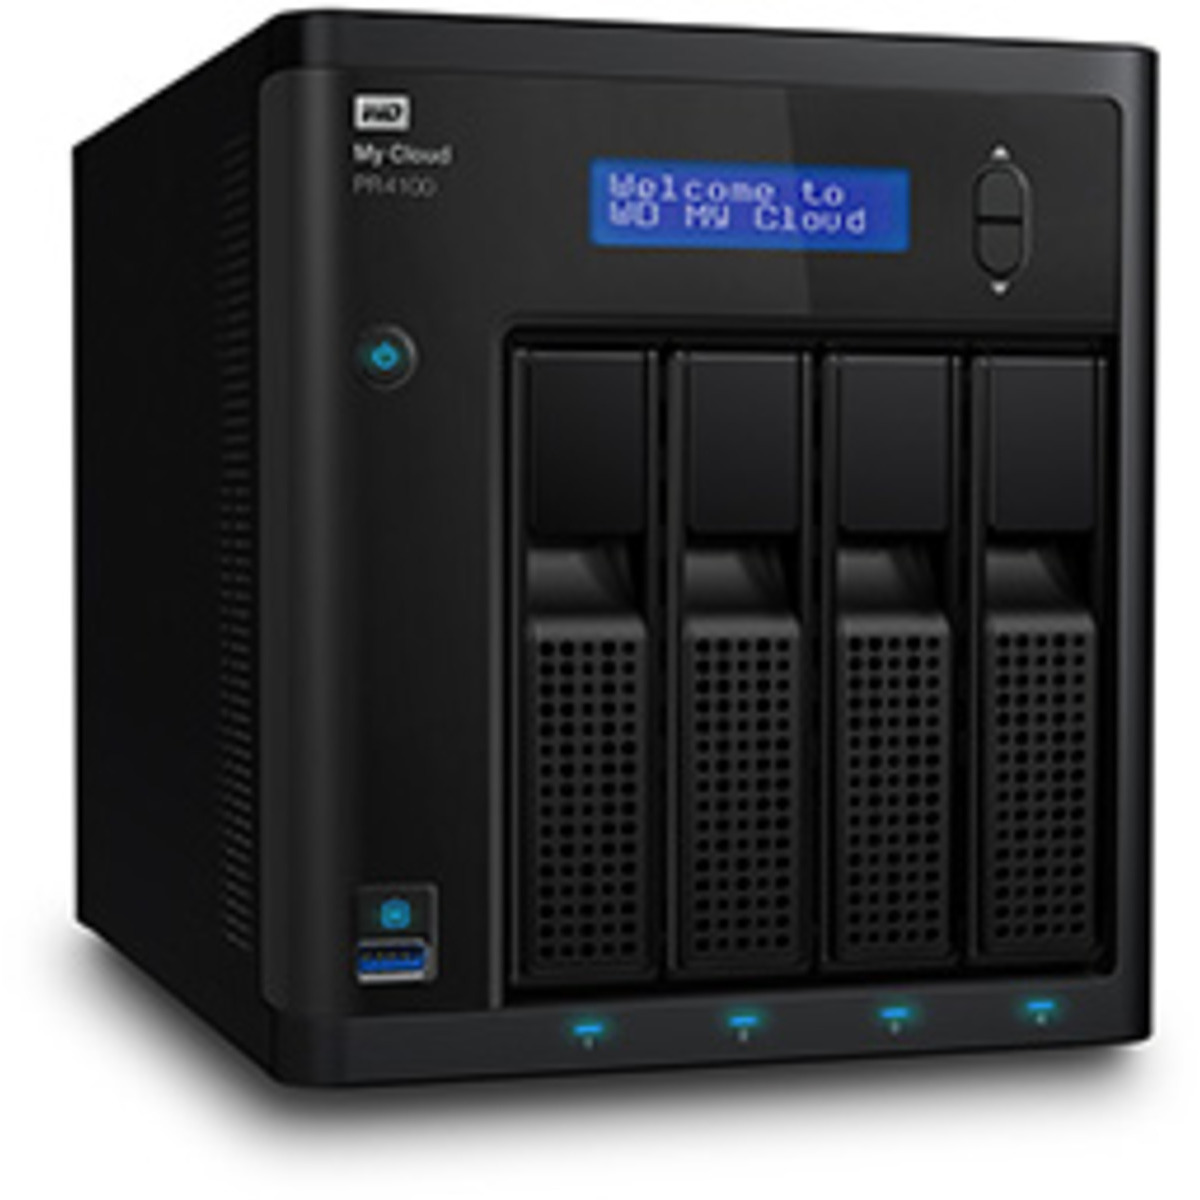 buy $2581 Western Digital My Cloud Pro PR4100 48tb Desktop NAS - Network Attached Storage Device 4x12000gb Western Digital Gold WD121KRYZ 3.5 7200rpm SATA 6Gb/s HDD ENTERPRISE Class Drives Installed - Burn-In Tested - nas headquarters buy network attached storage server device das new sale raid-5 free shipping usa My Cloud Pro PR4100